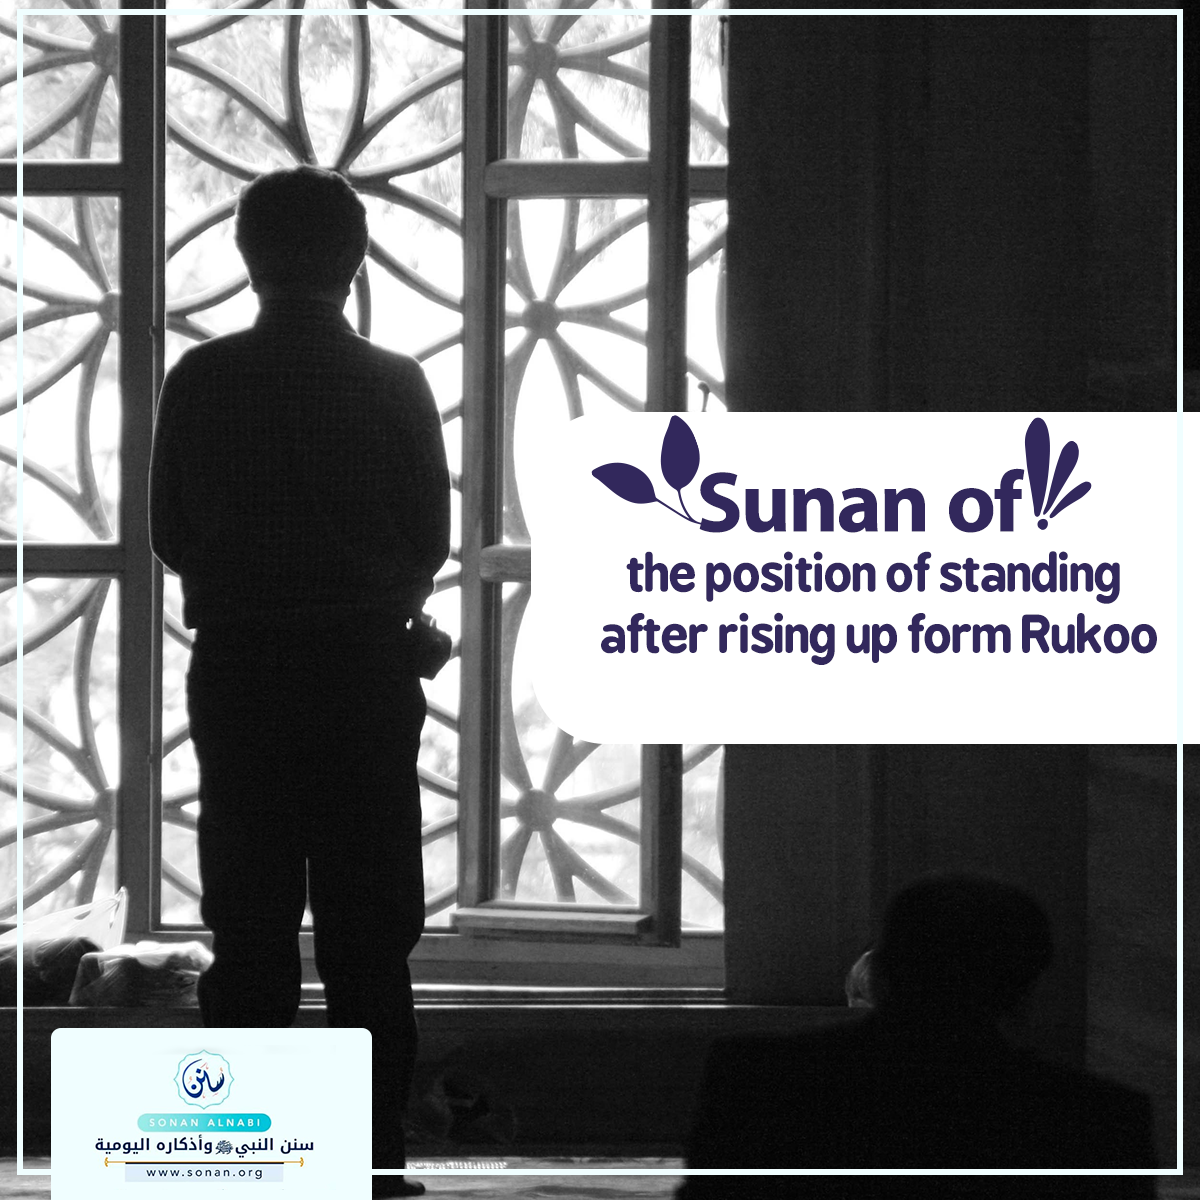 Sunan of the position of standing after rising up form Rukoo